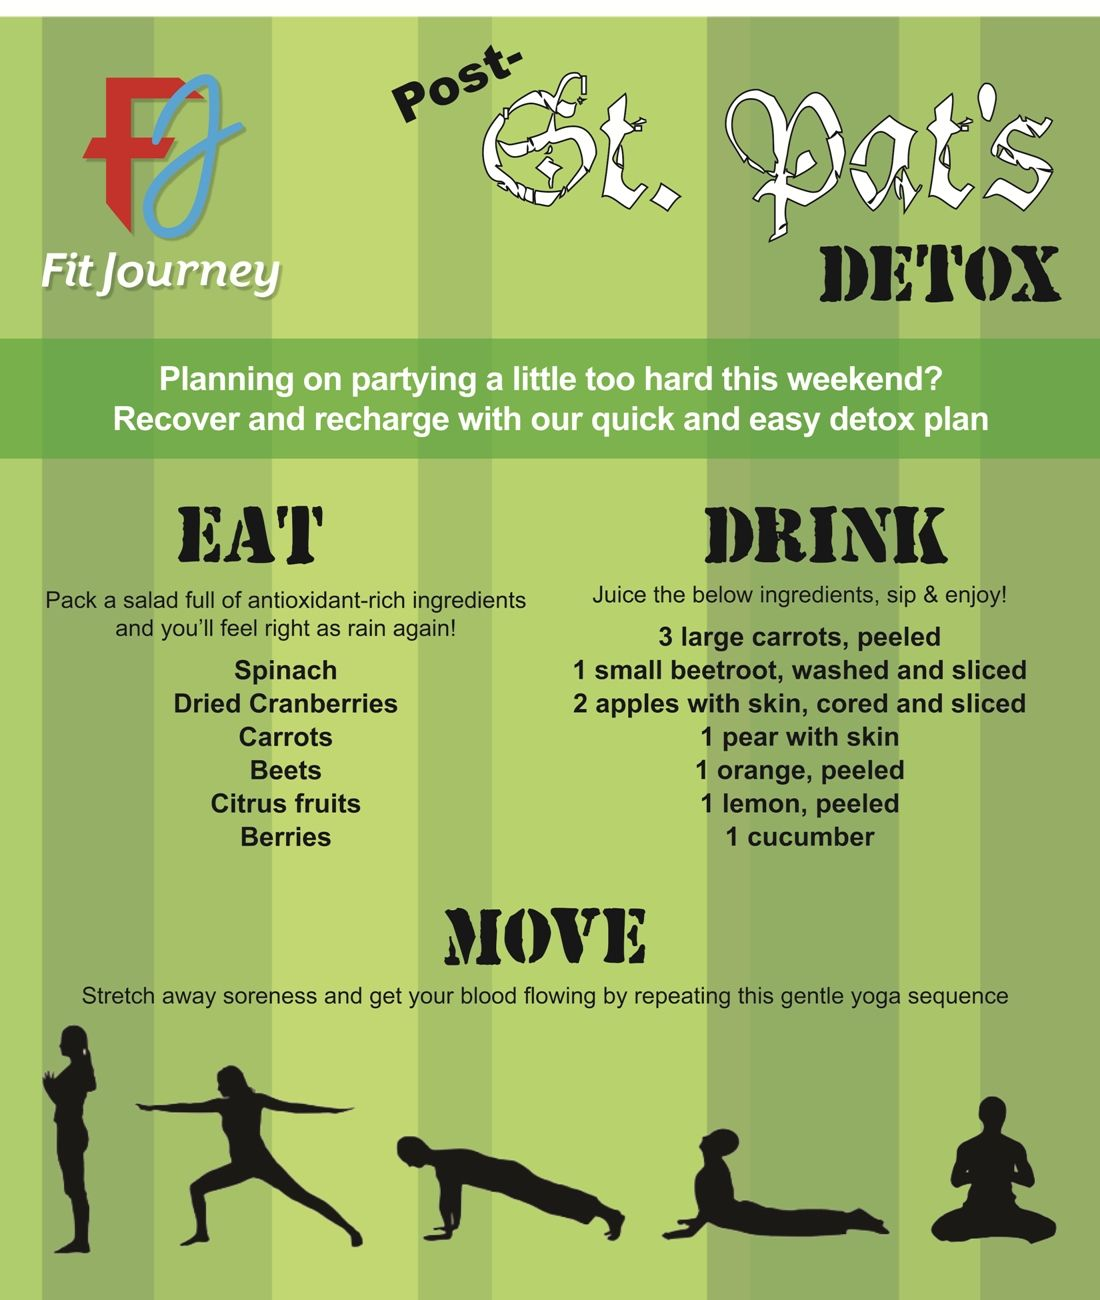 Now, we're no Dr, and we definitely want you to be responsible this weekend, but on the OFF CHANCE you do have plans for this weekend, go out with peace of mind knowing a remedy is ready for you.  Check out our Post-St. Patrick's Day Detox plan that will have you bright eyed and bushy tailed for Monday morning!  For more, check out www.fitjourney.com